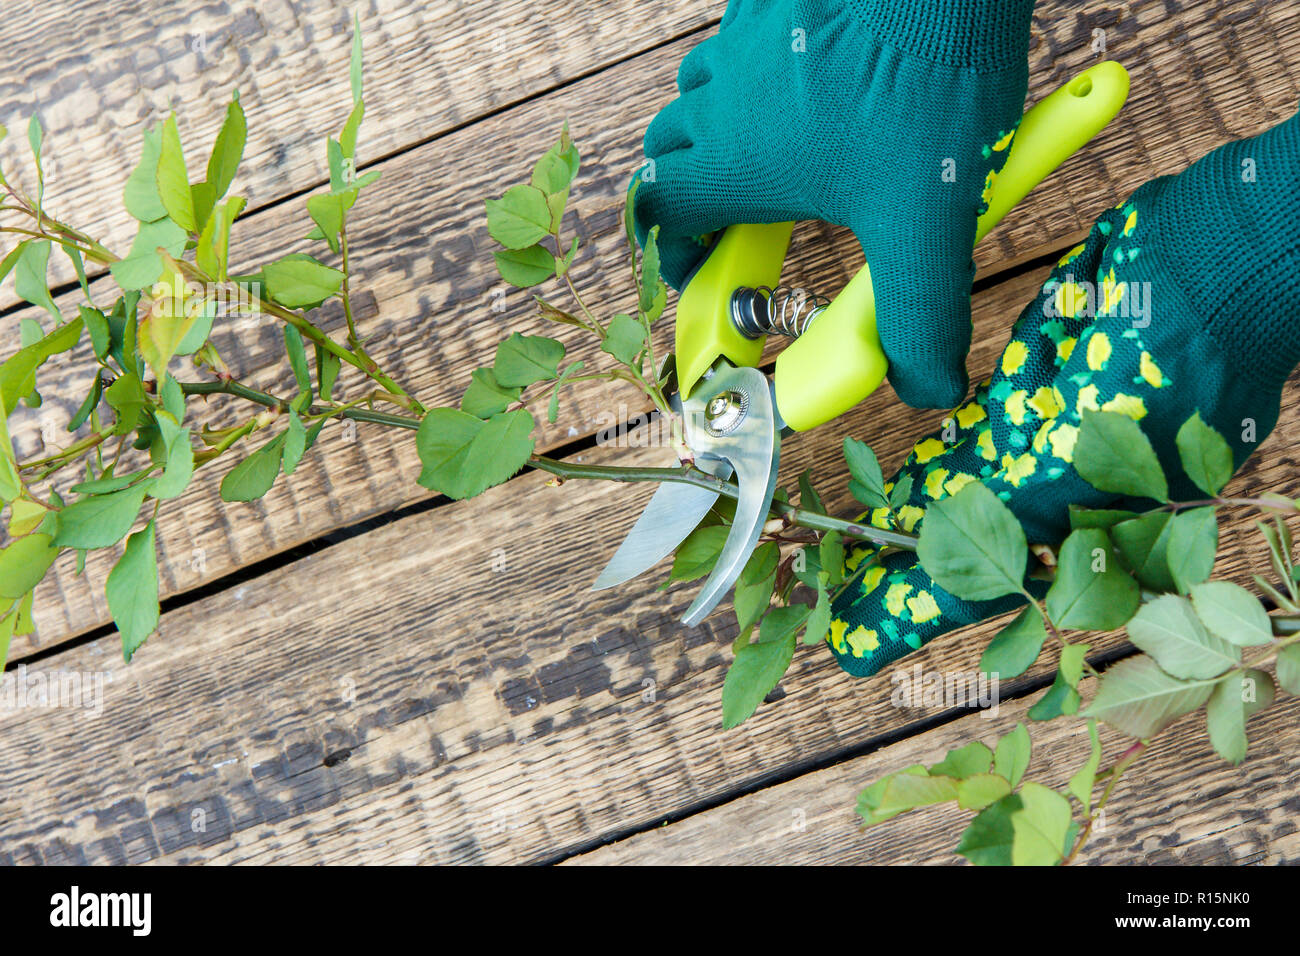 Hands dressed in green gloves holds pruner and shears the branch of rose bush on wooden background. Garden tools. - Stock Photo